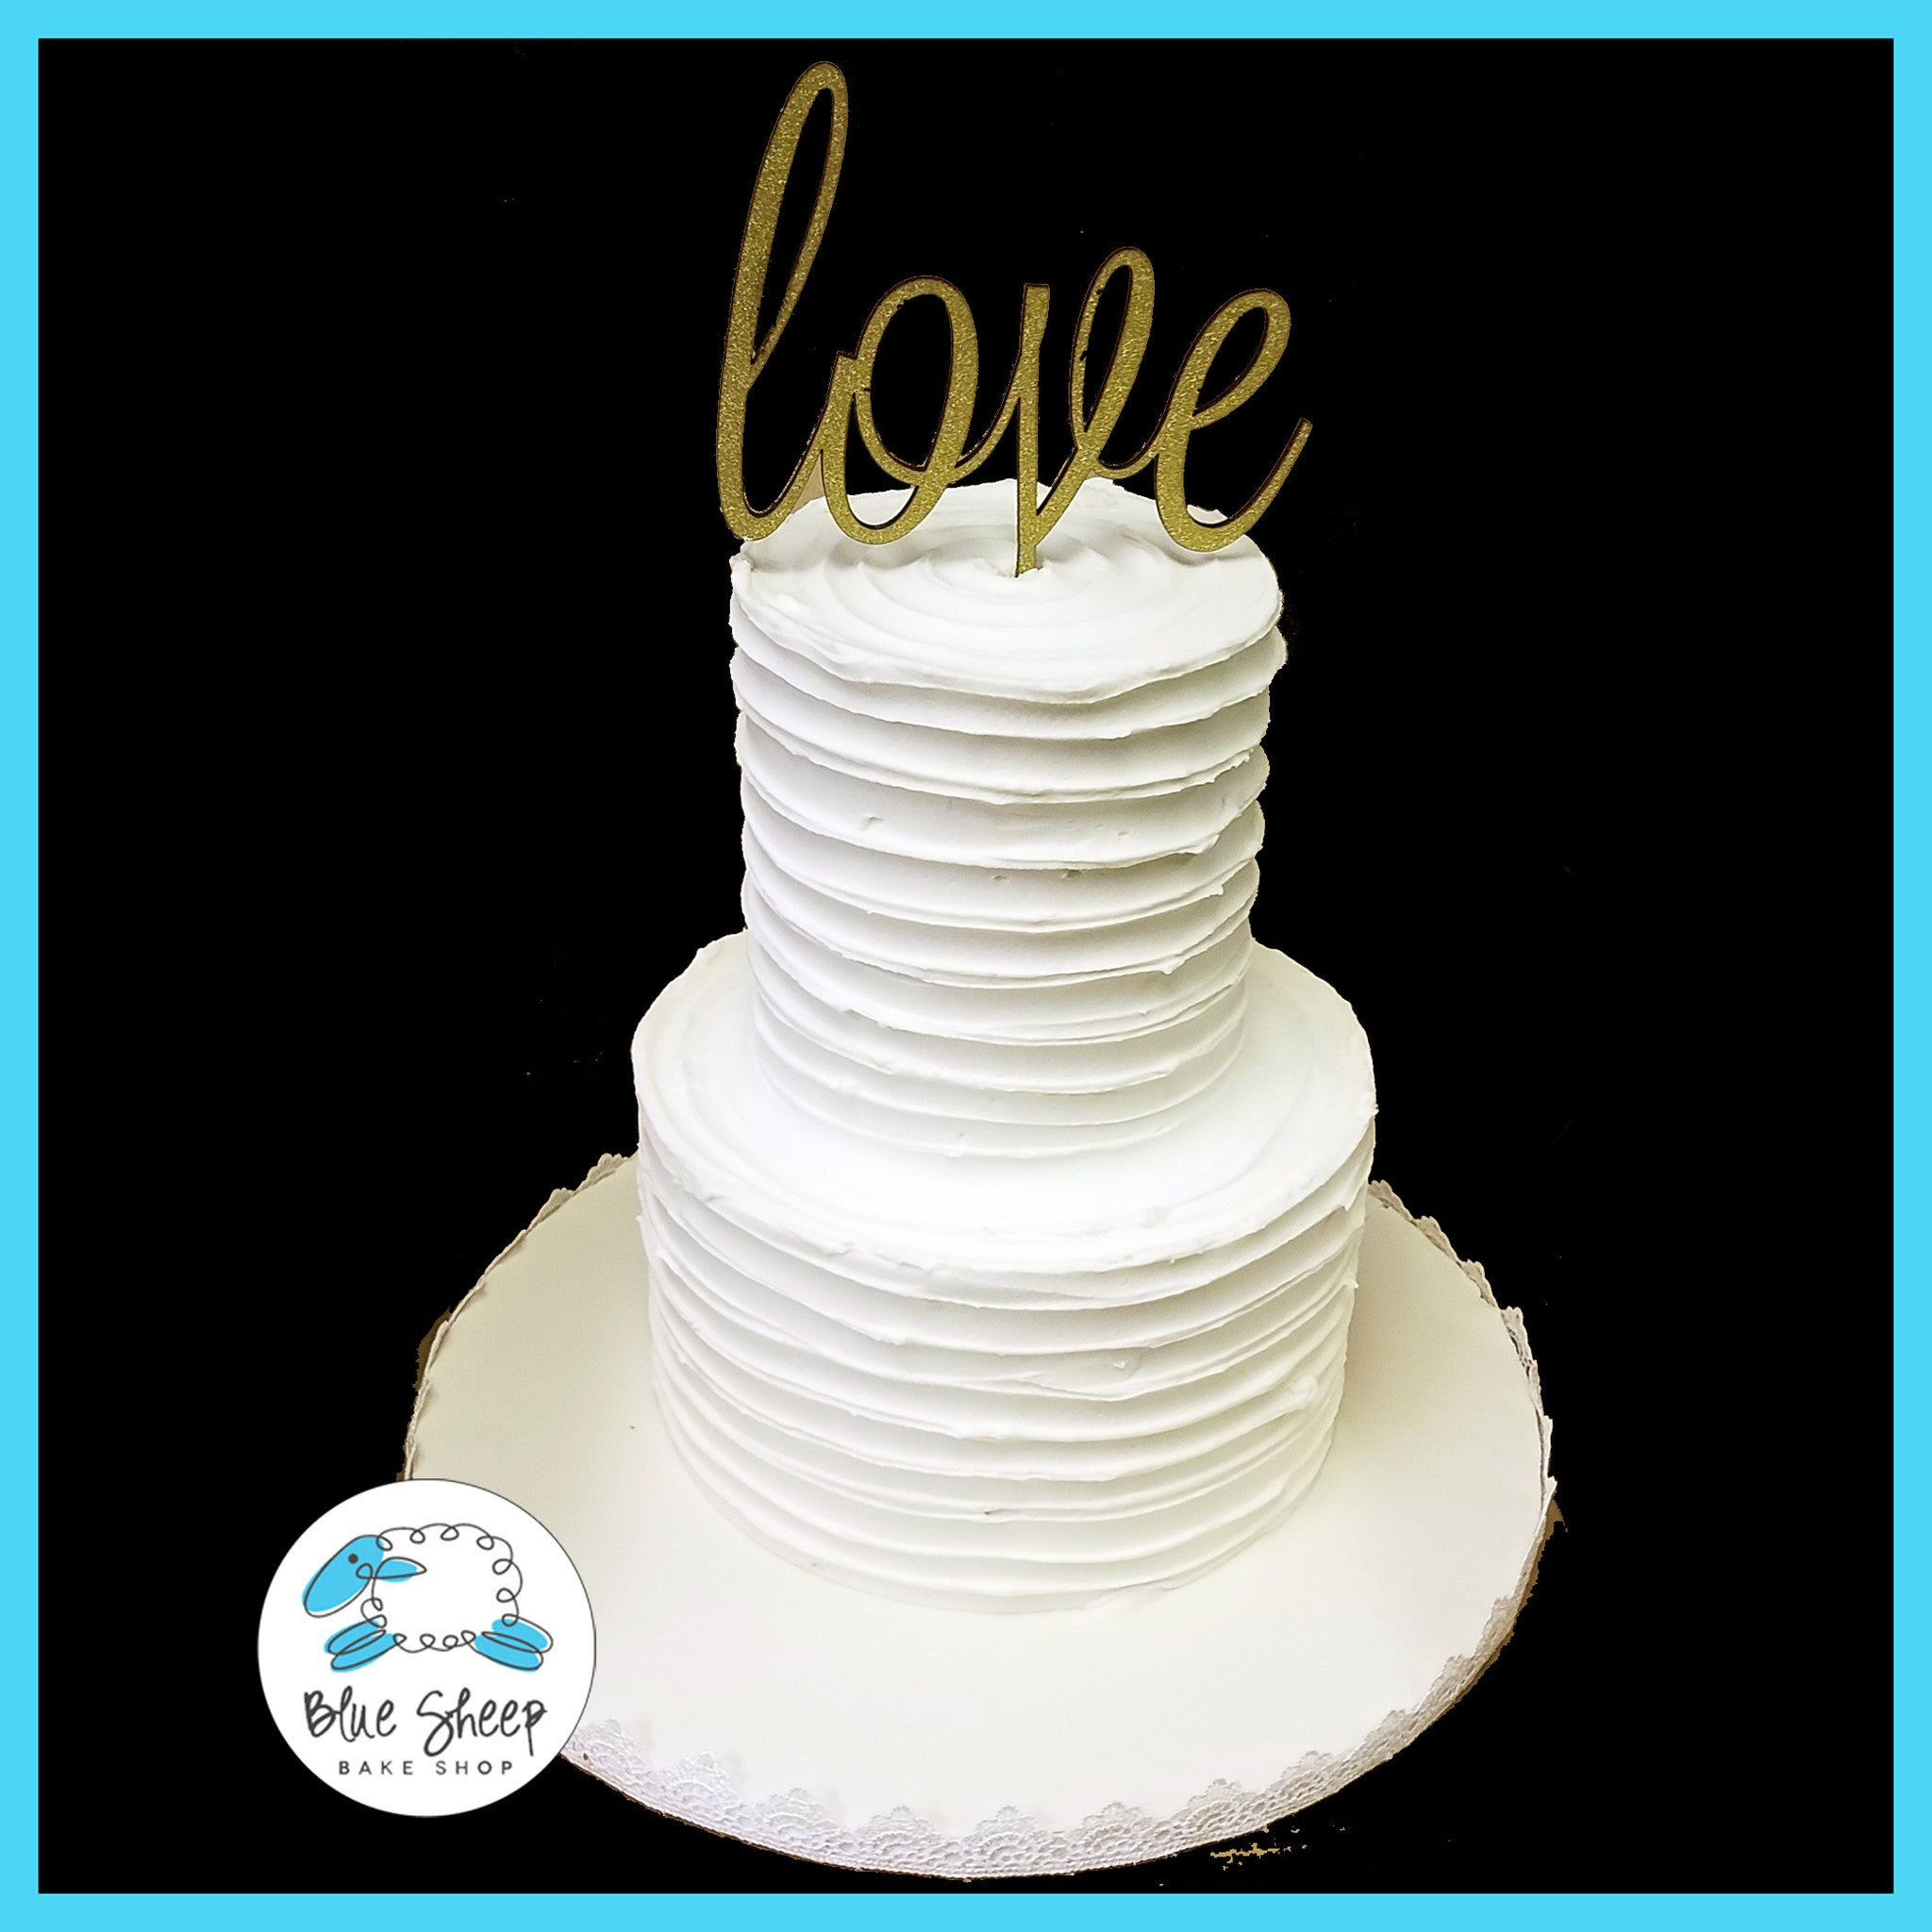 Buttercream Rustic Wedding Cake with Love Topper | Blue Sheep Bake Shop